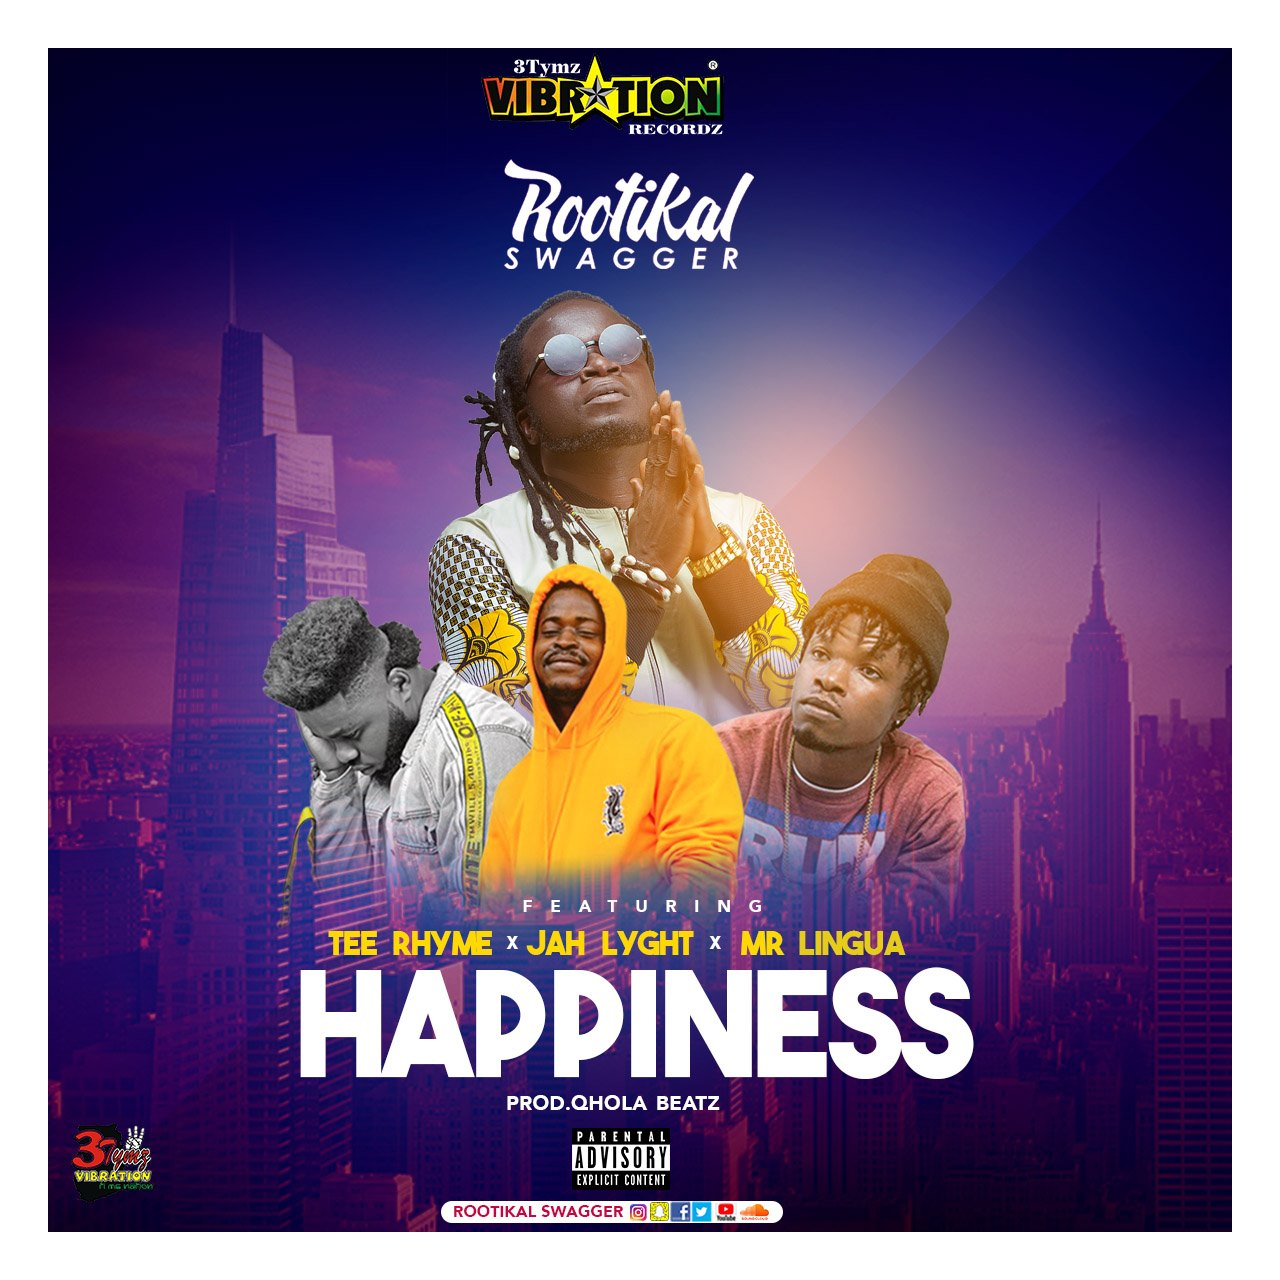 Happiness art cover